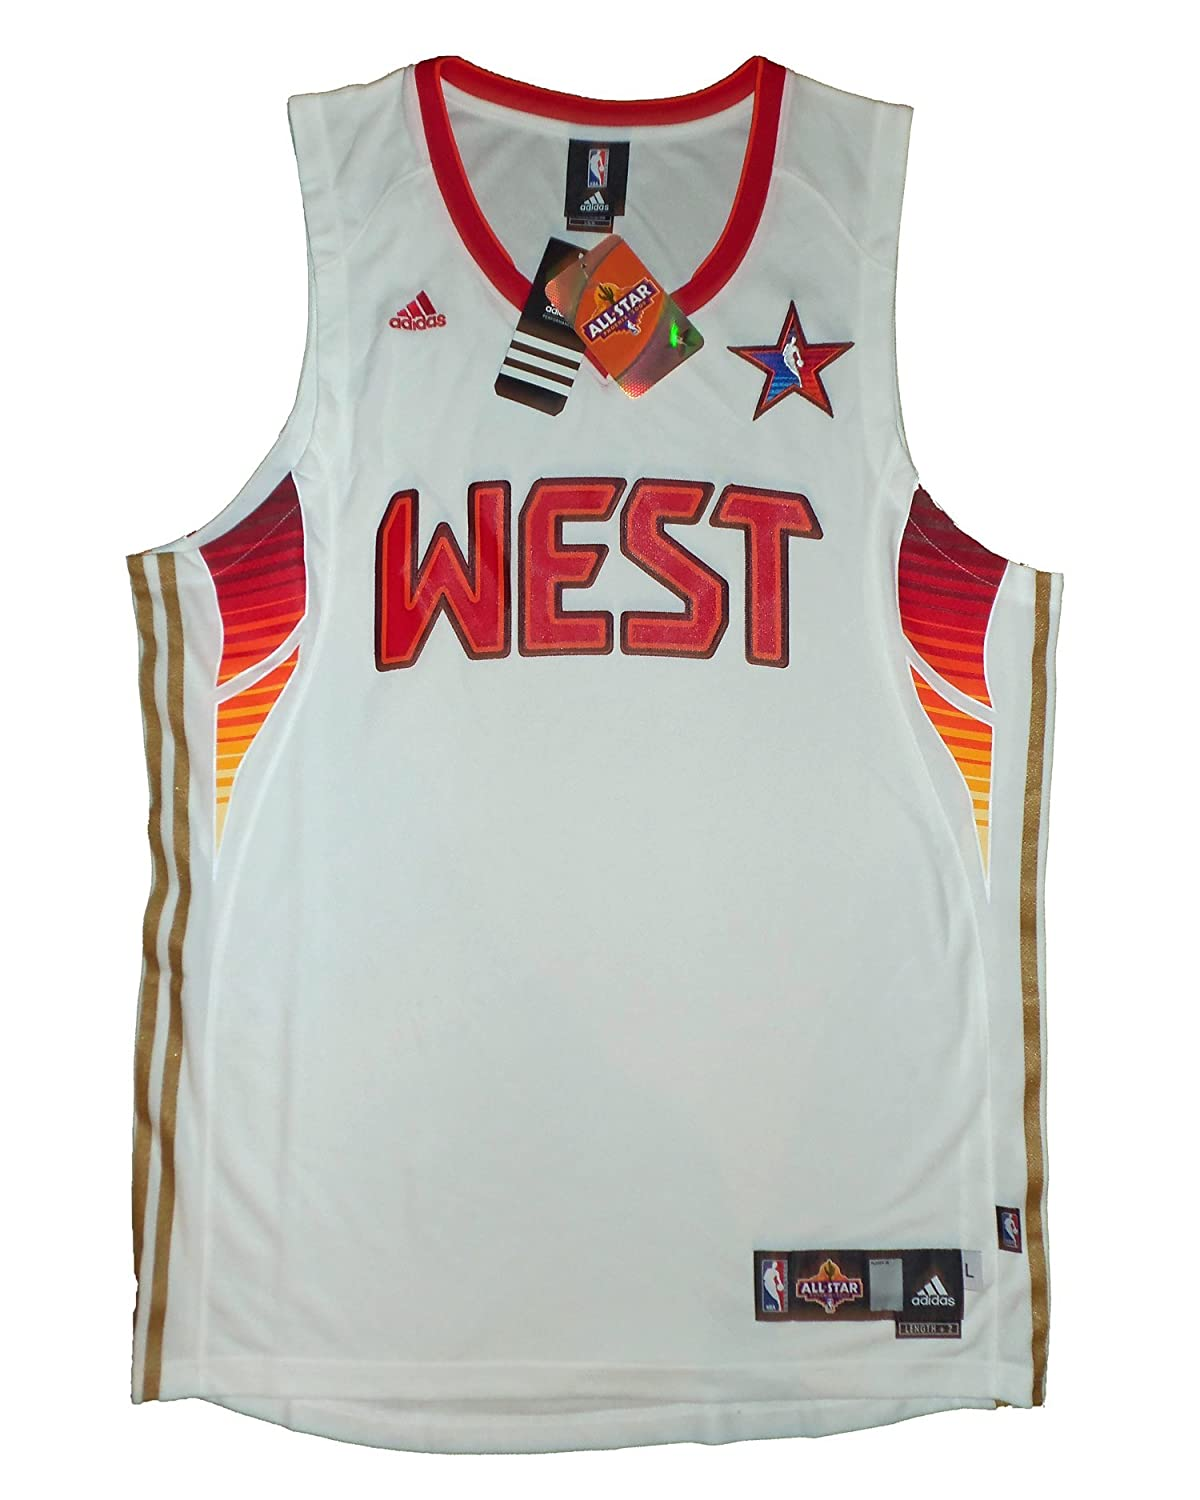 Adidas NBA Swingman All Star West Phoenix 2009 Basketball Jersey White 2XL +2